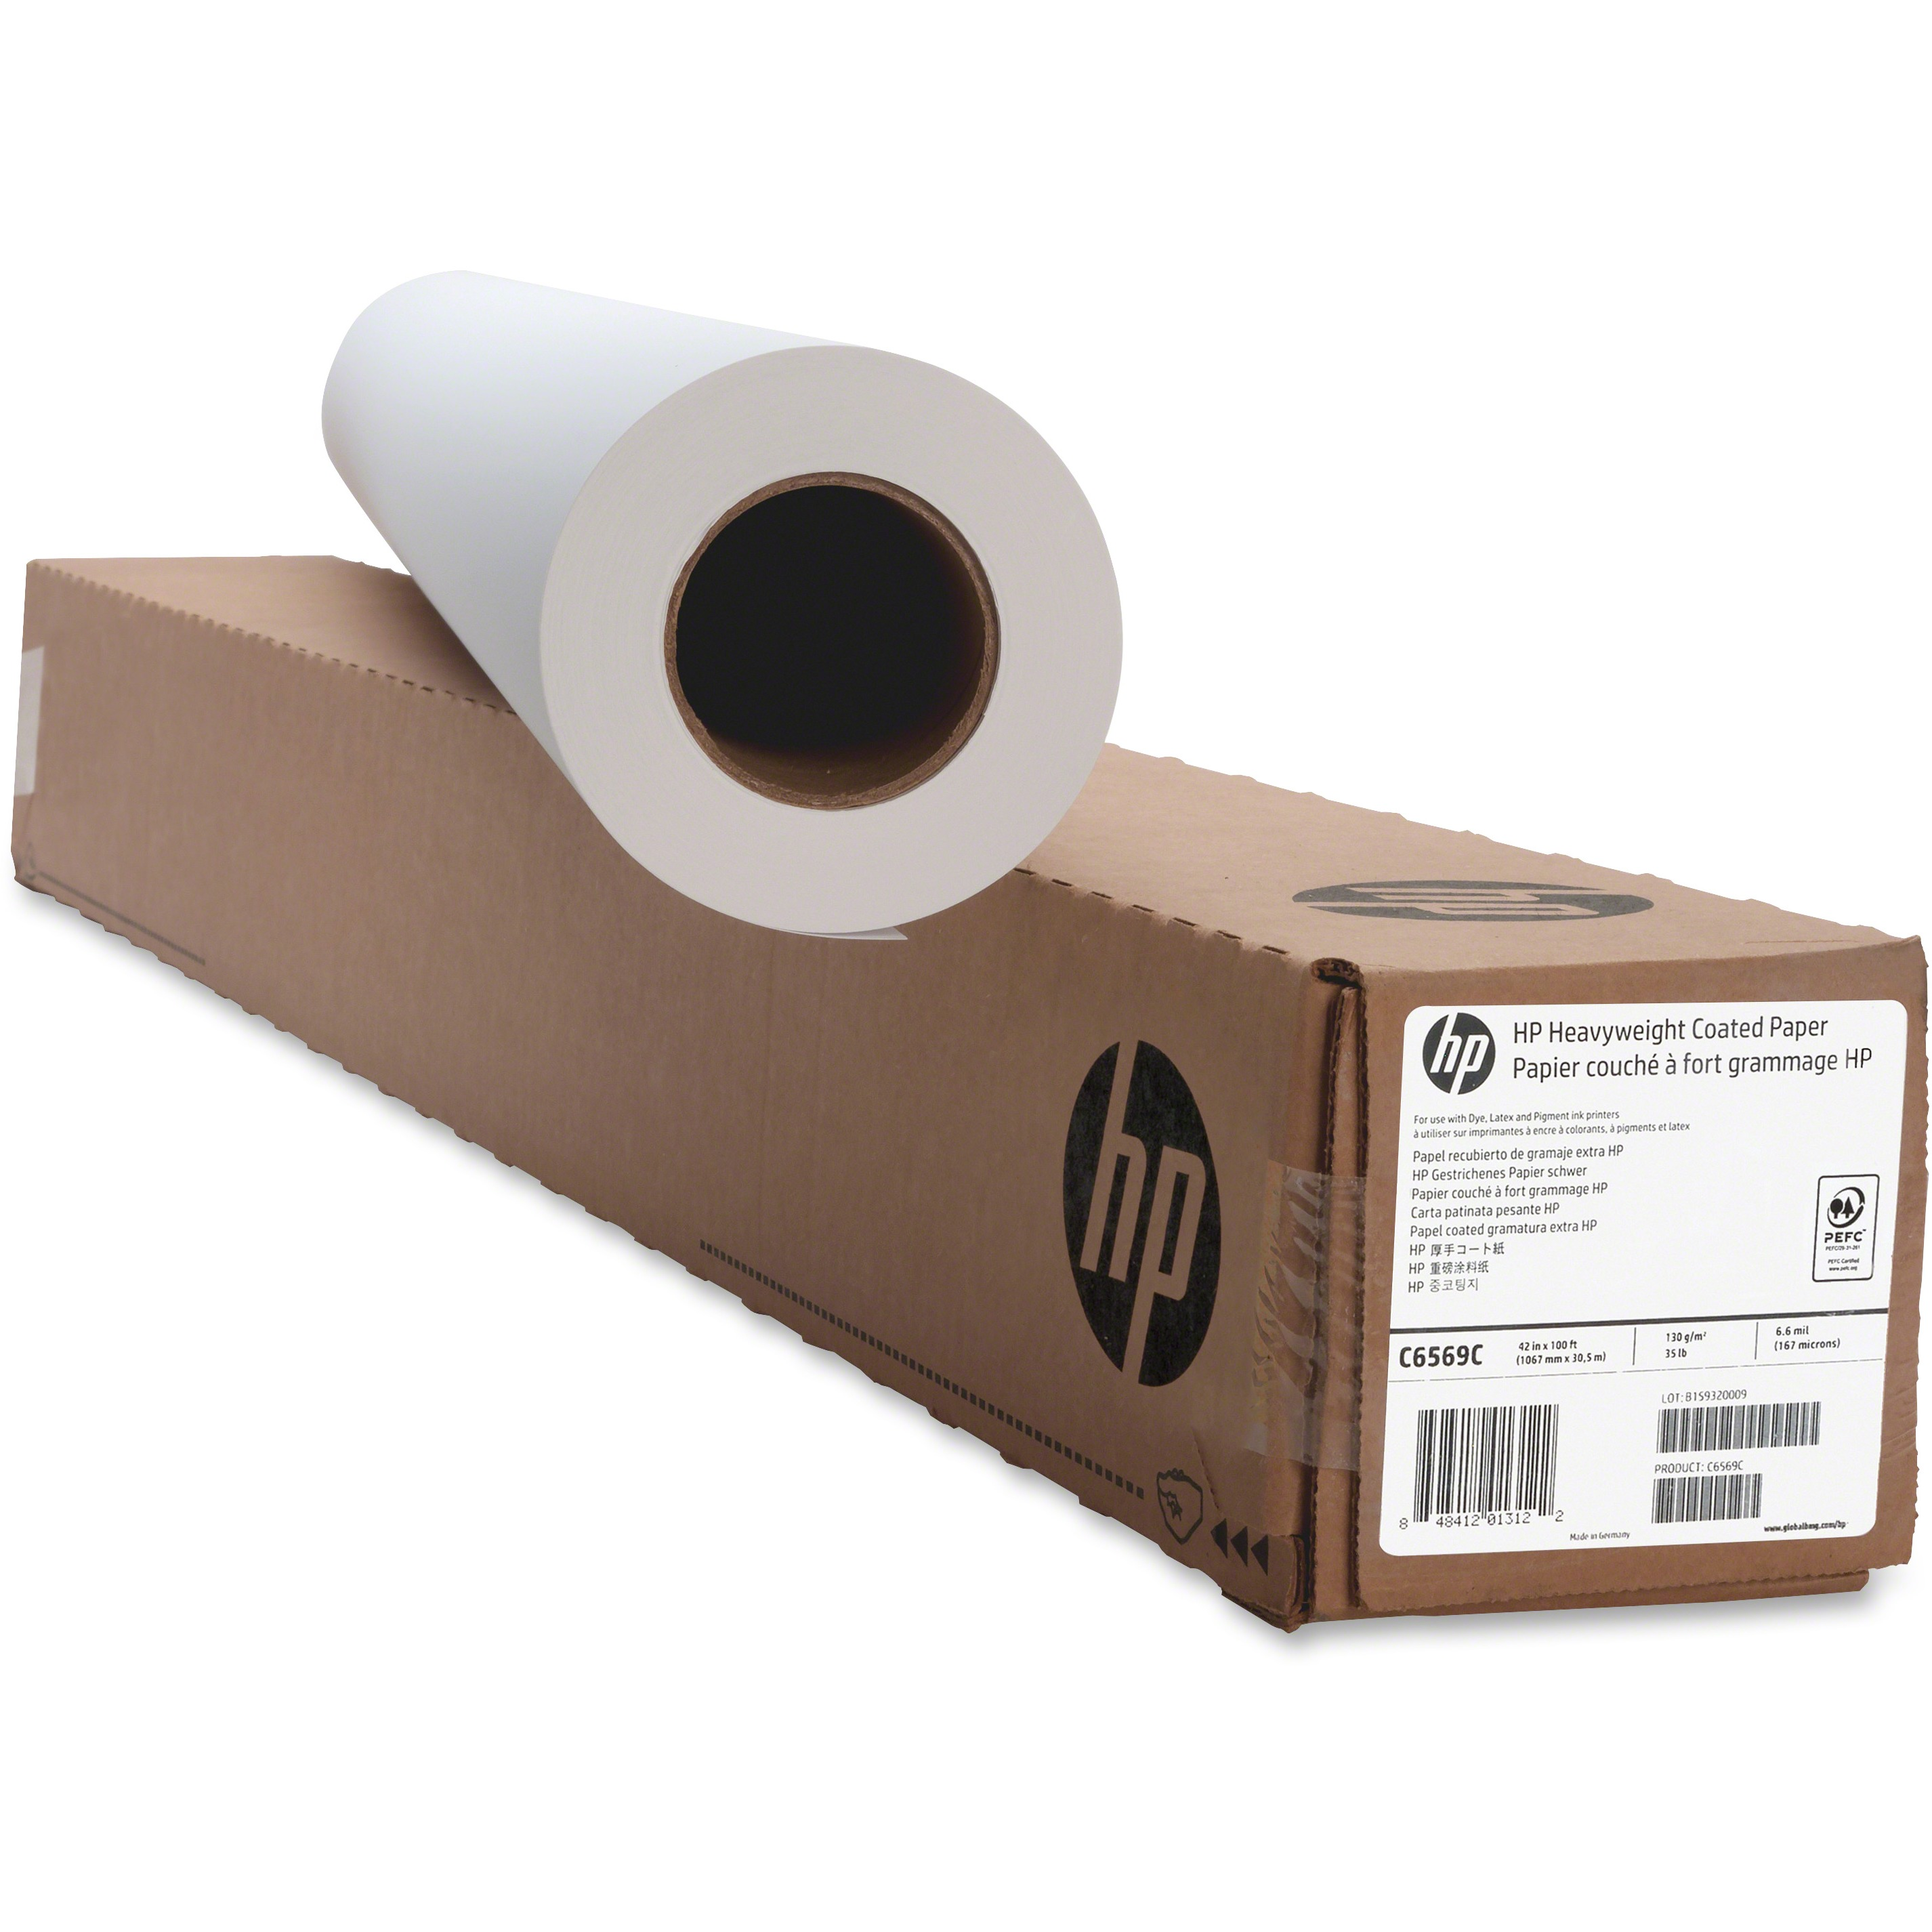 HP, HEWC6569C, Heavyweight Coated Paper, 1 Roll, Bright White